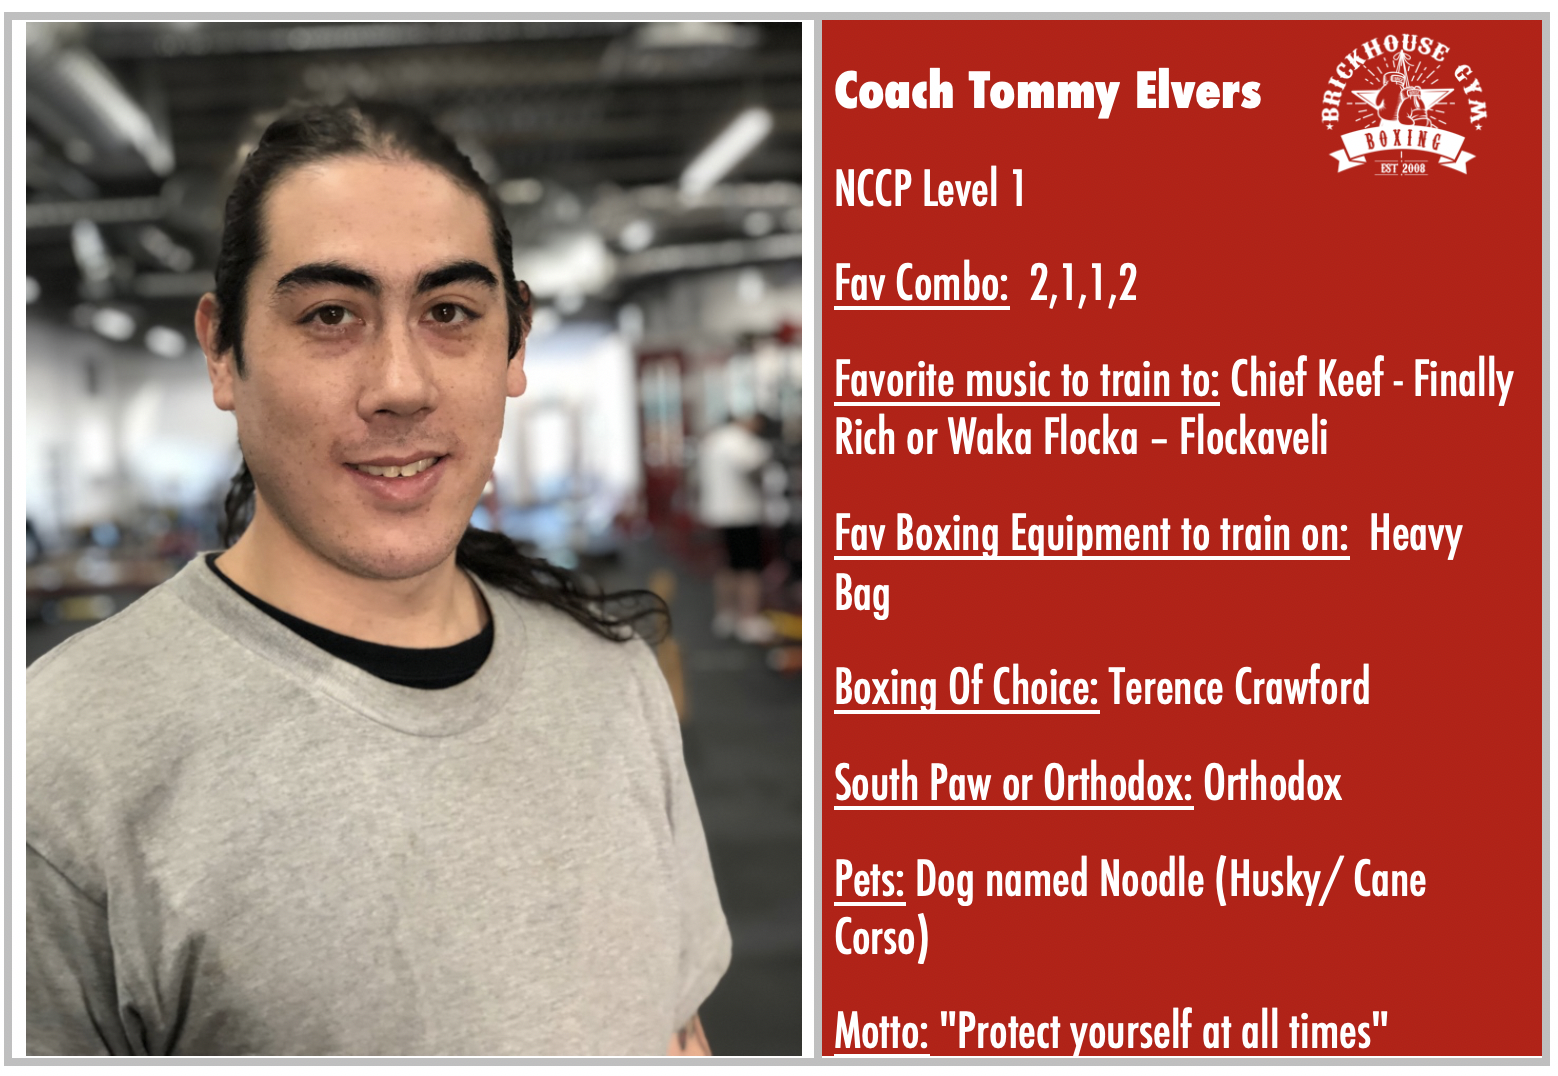 Coach Tommy Elvers: Featured Coach of Week 6 October 14 to